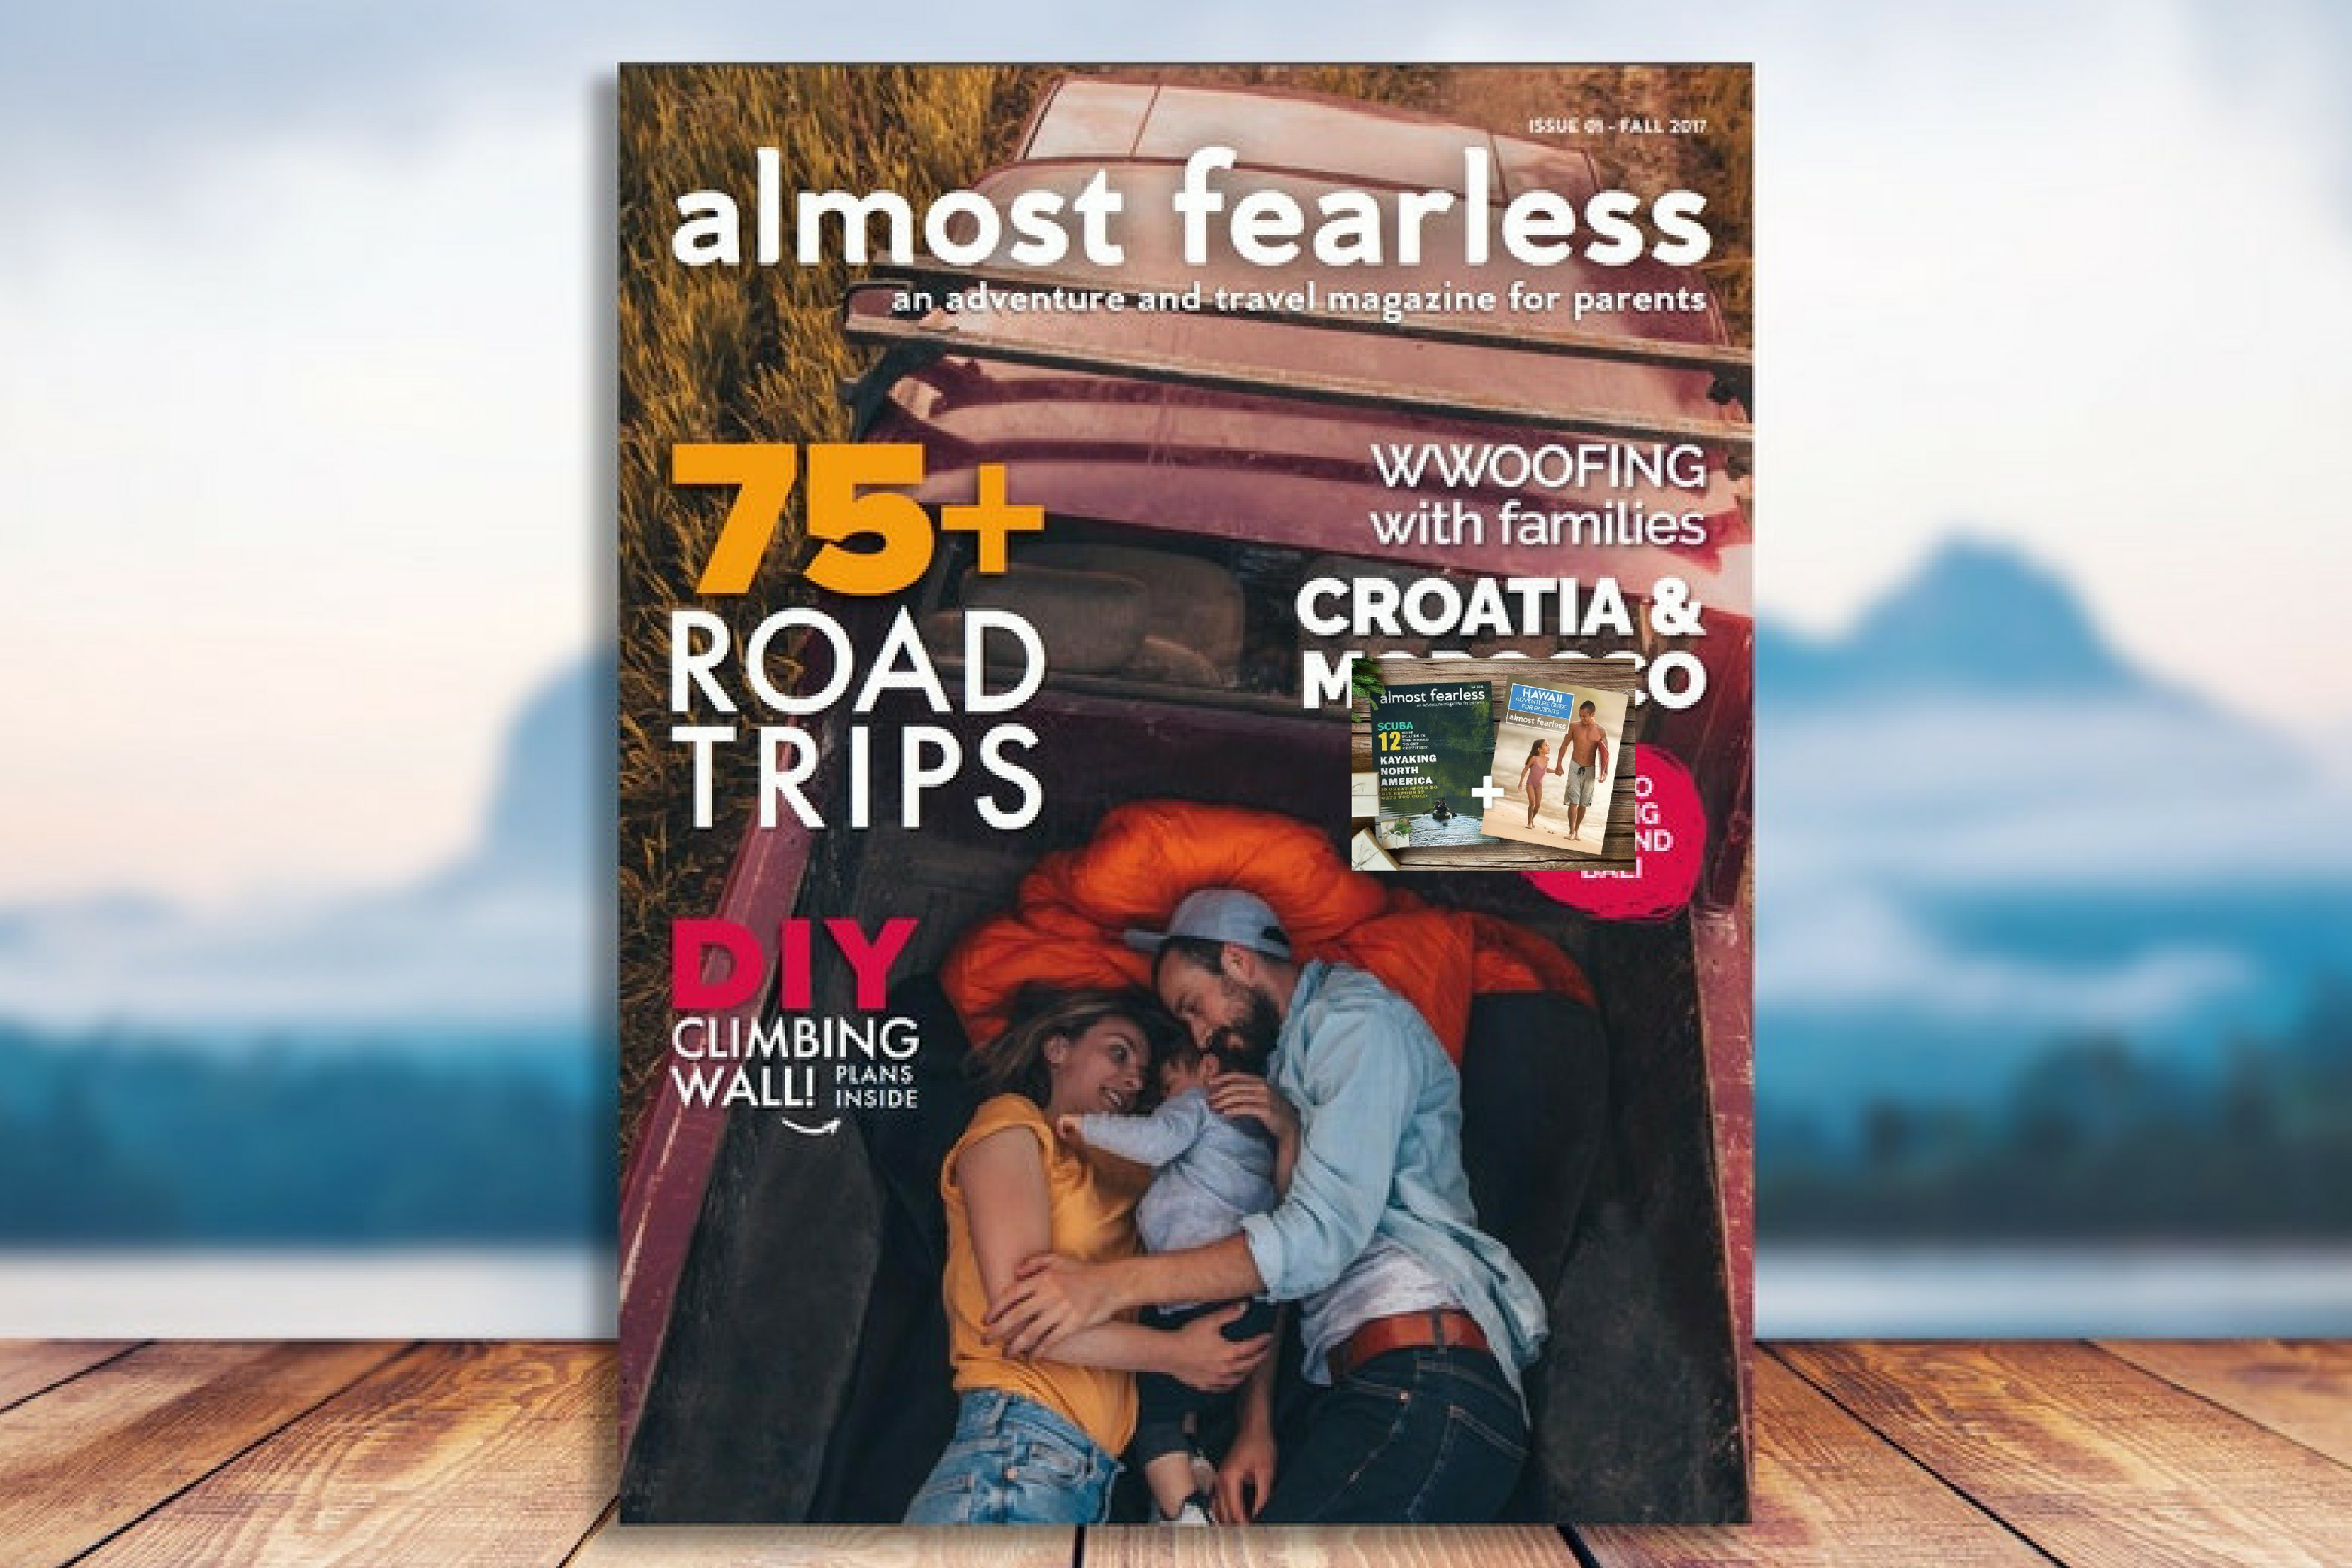 Almost Fearless Magazine